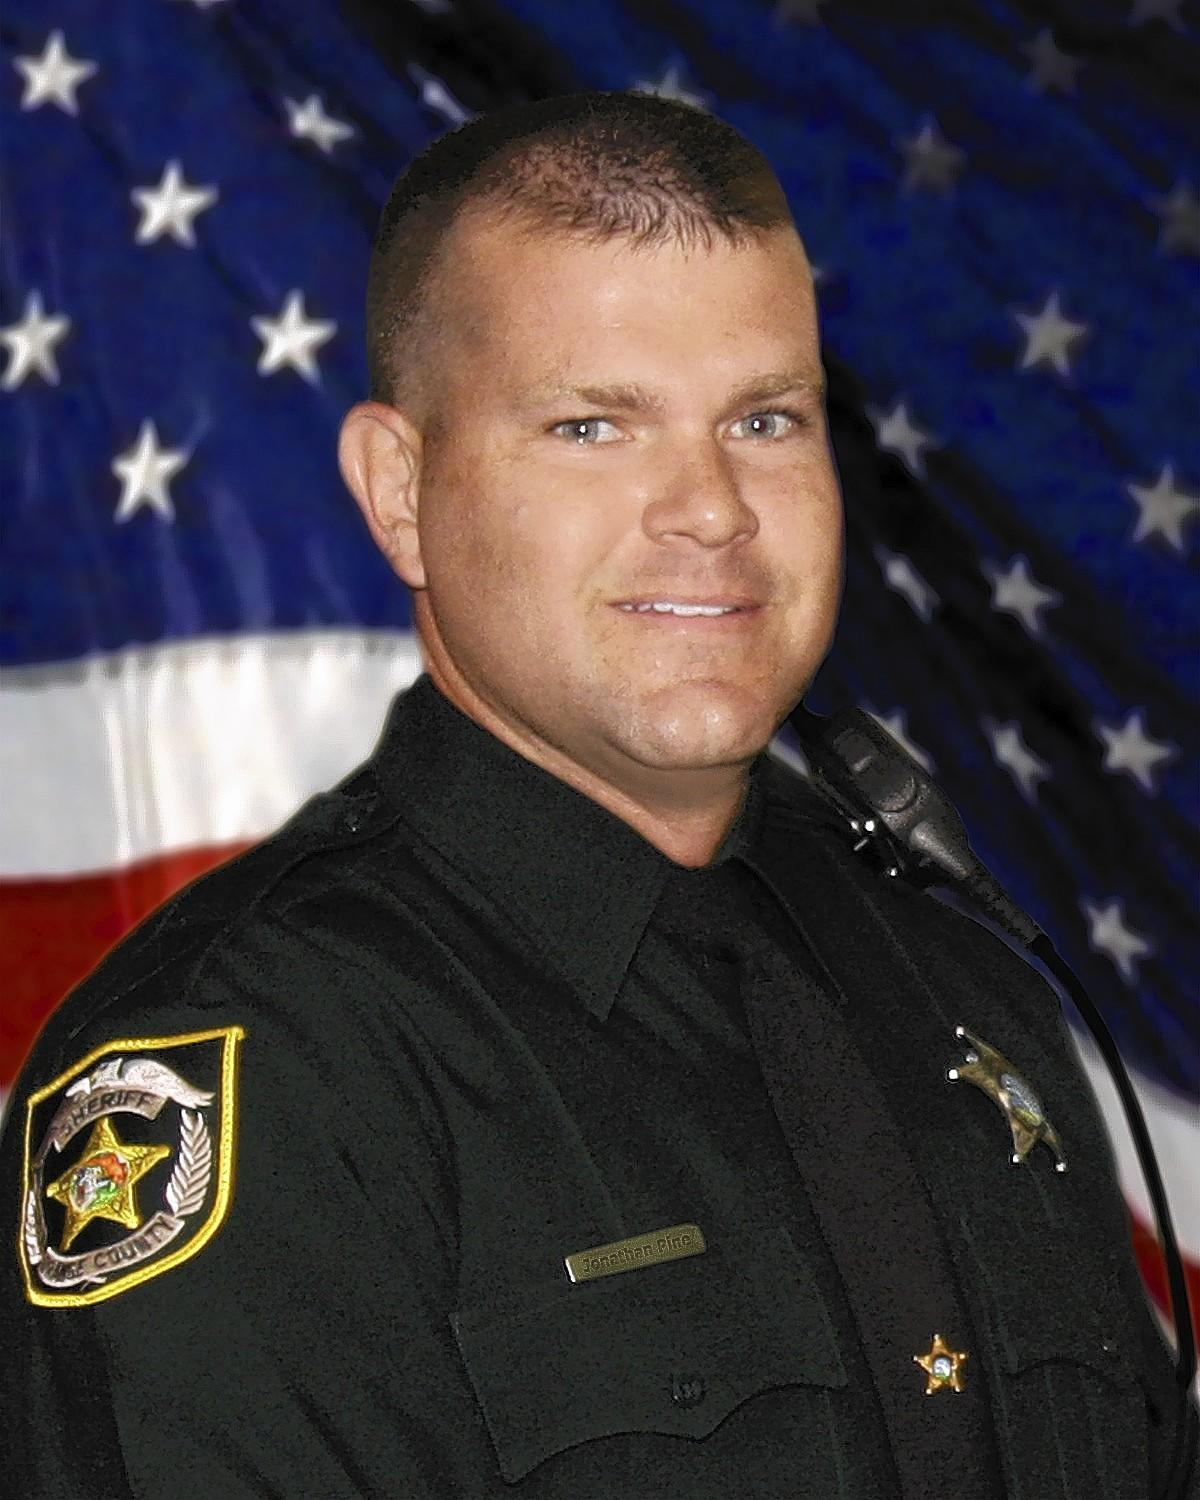 Deputy Scott Pine, 34, had been employed with the Orange County Sheriff's Office since 2011. He was gunned down by a burglary suspect early Tuesday.